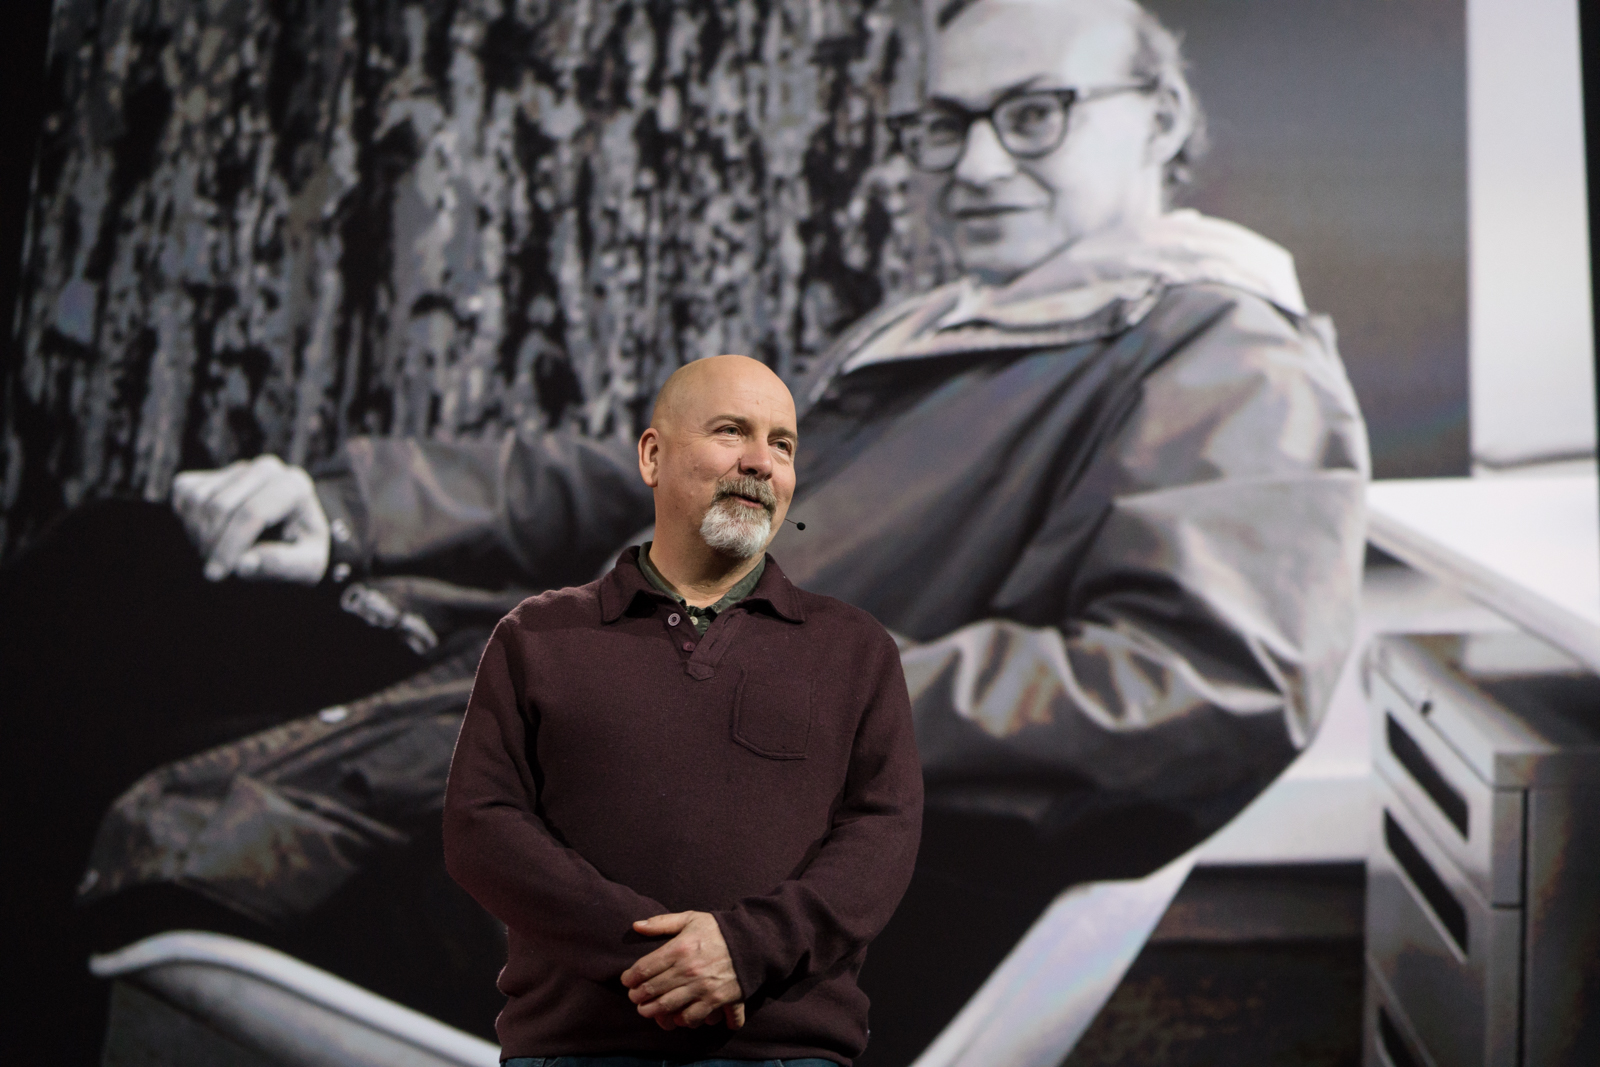 Danny Hillis gives tribute to Marvin Minsky at TED2016 - Dream, February 15-19, 2016, Vancouver Convention Center, Vancouver, Canada. Photo: Bret Hartman / TED